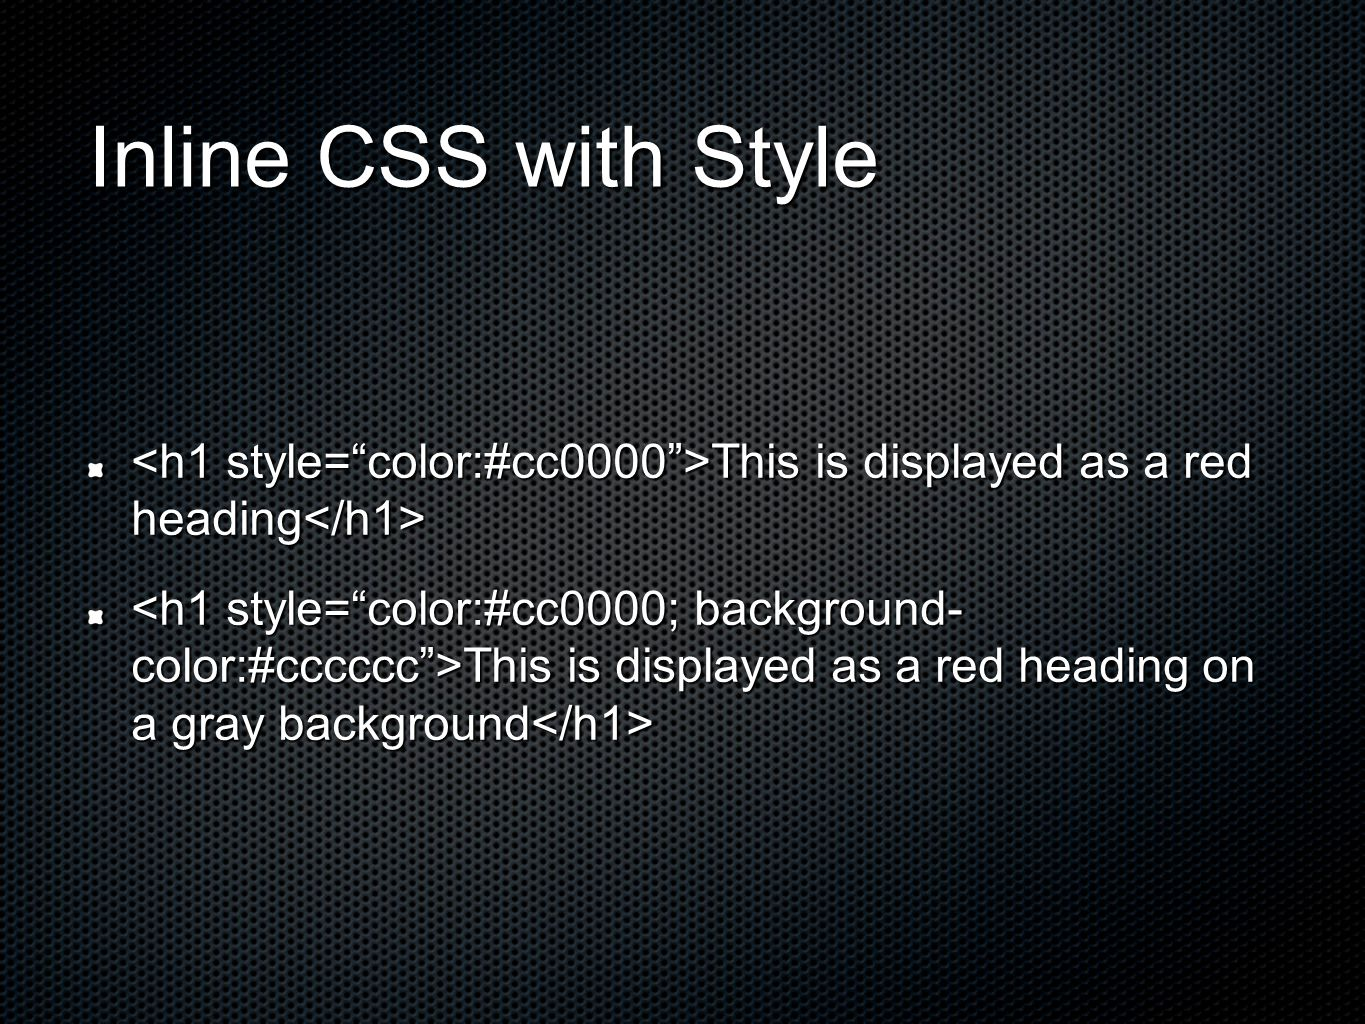 Inline CSS with Style This is displayed as a red heading This is displayed as a red heading This is displayed as a red heading on a gray background This is displayed as a red heading on a gray background